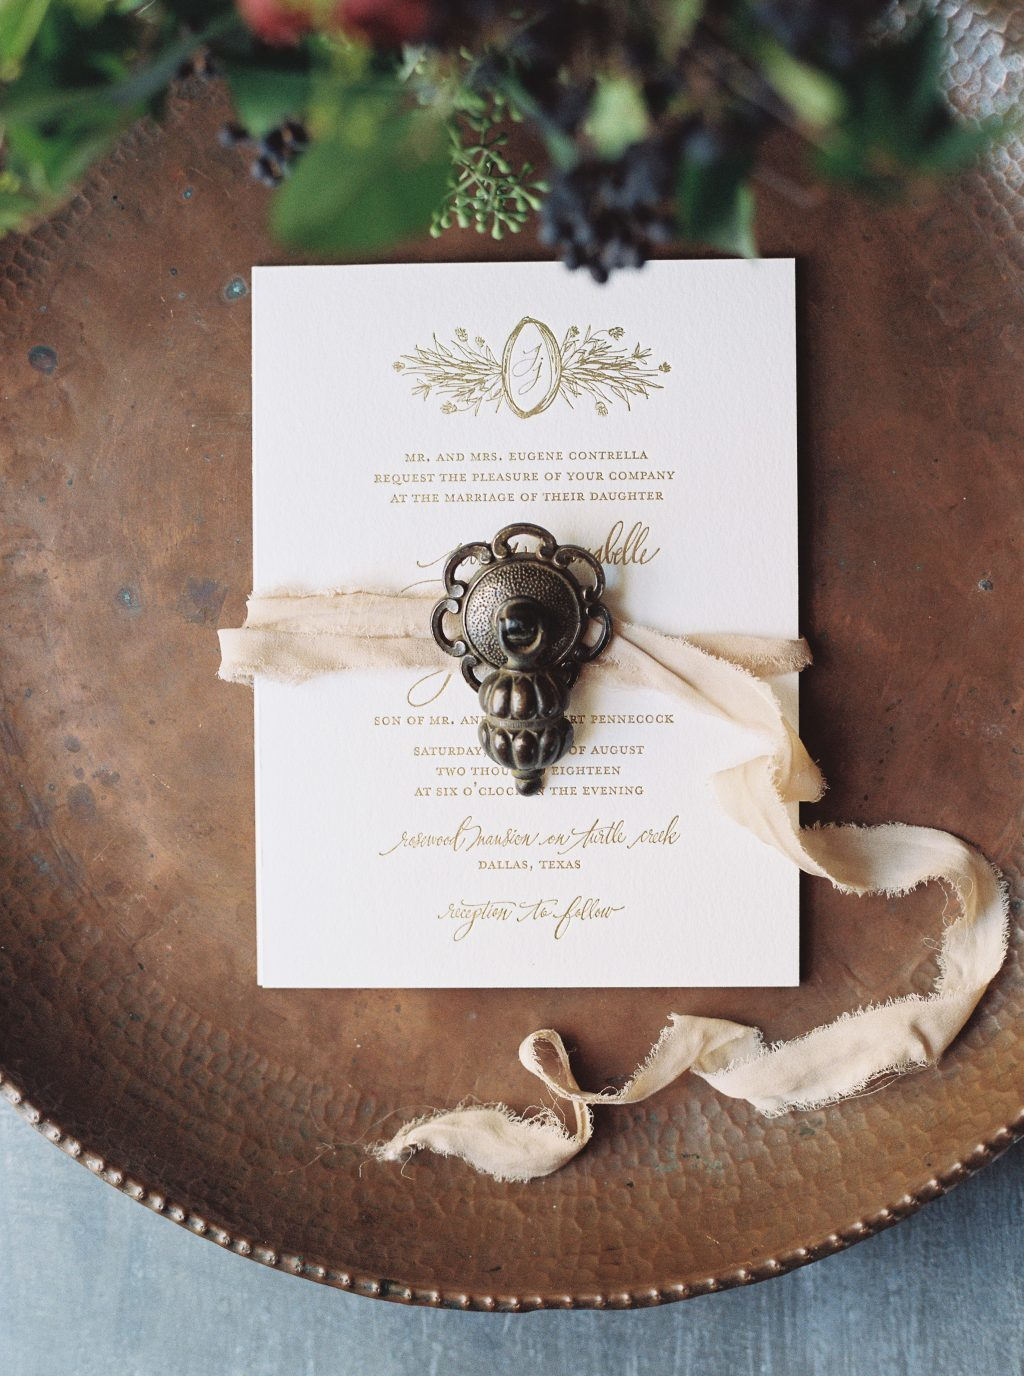 Cordelia wedding invitations by Kelle McCarter are on sale now.